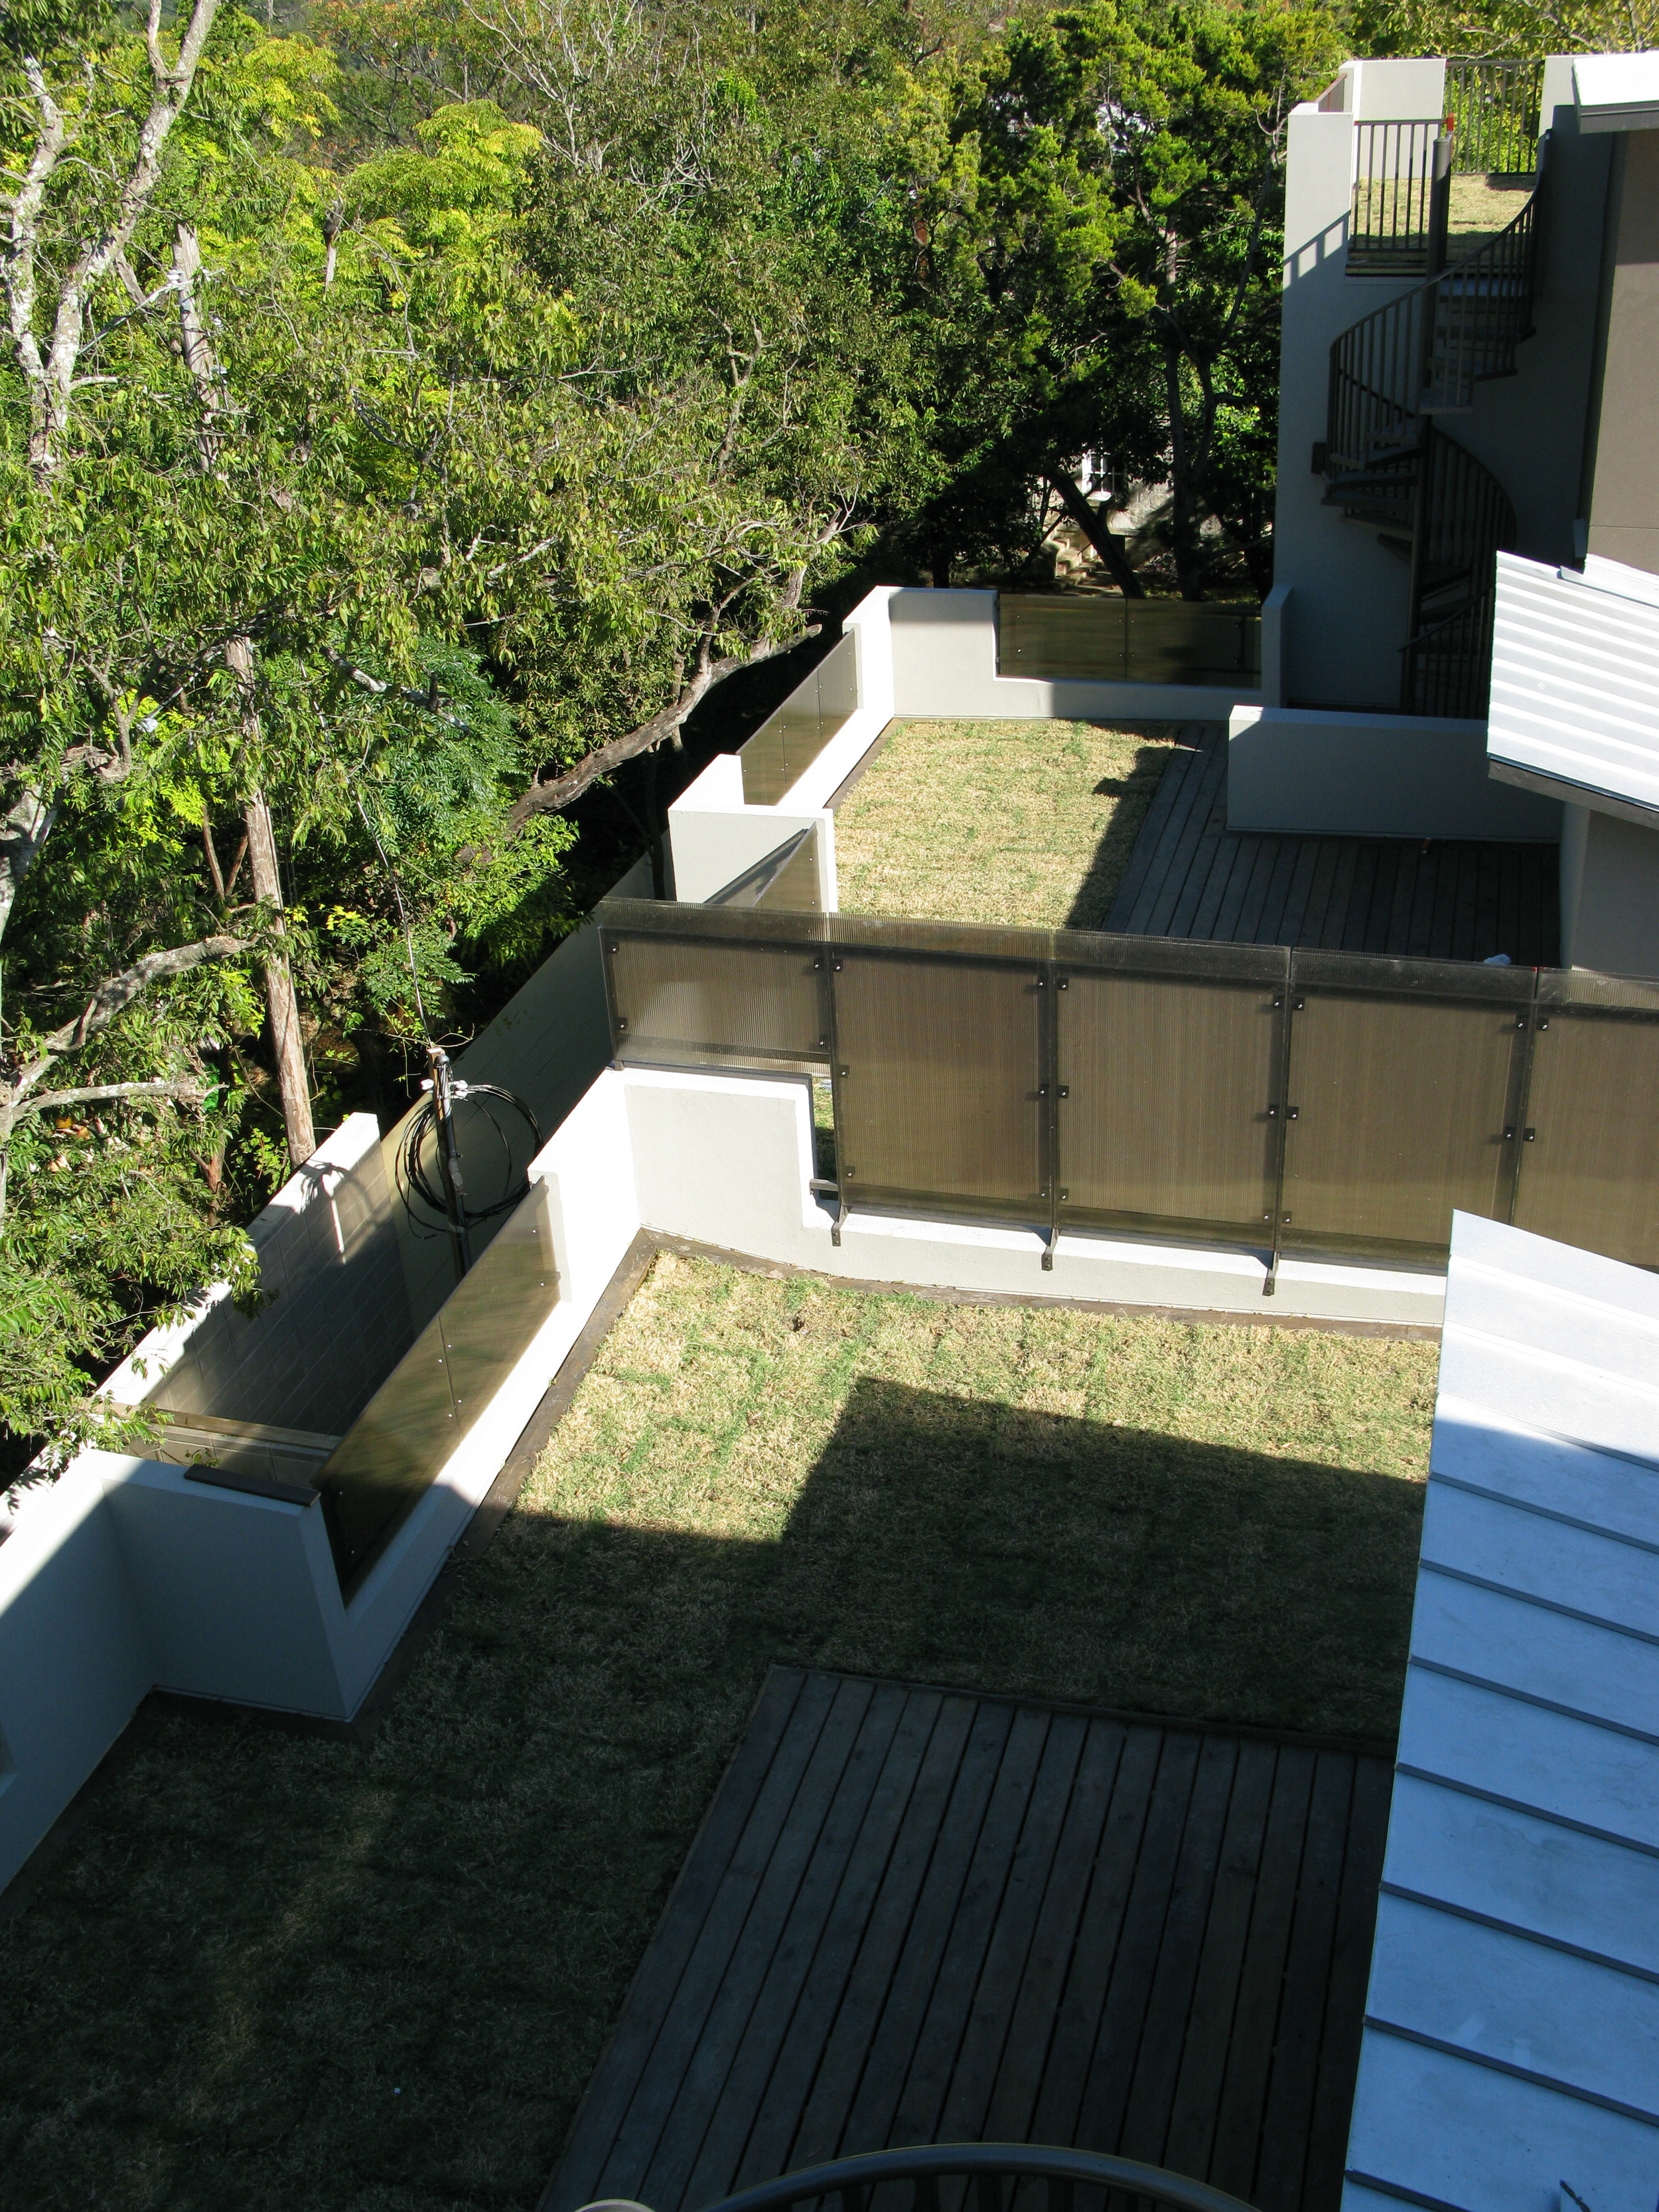 On rare occasions we put grass on our roof decks.